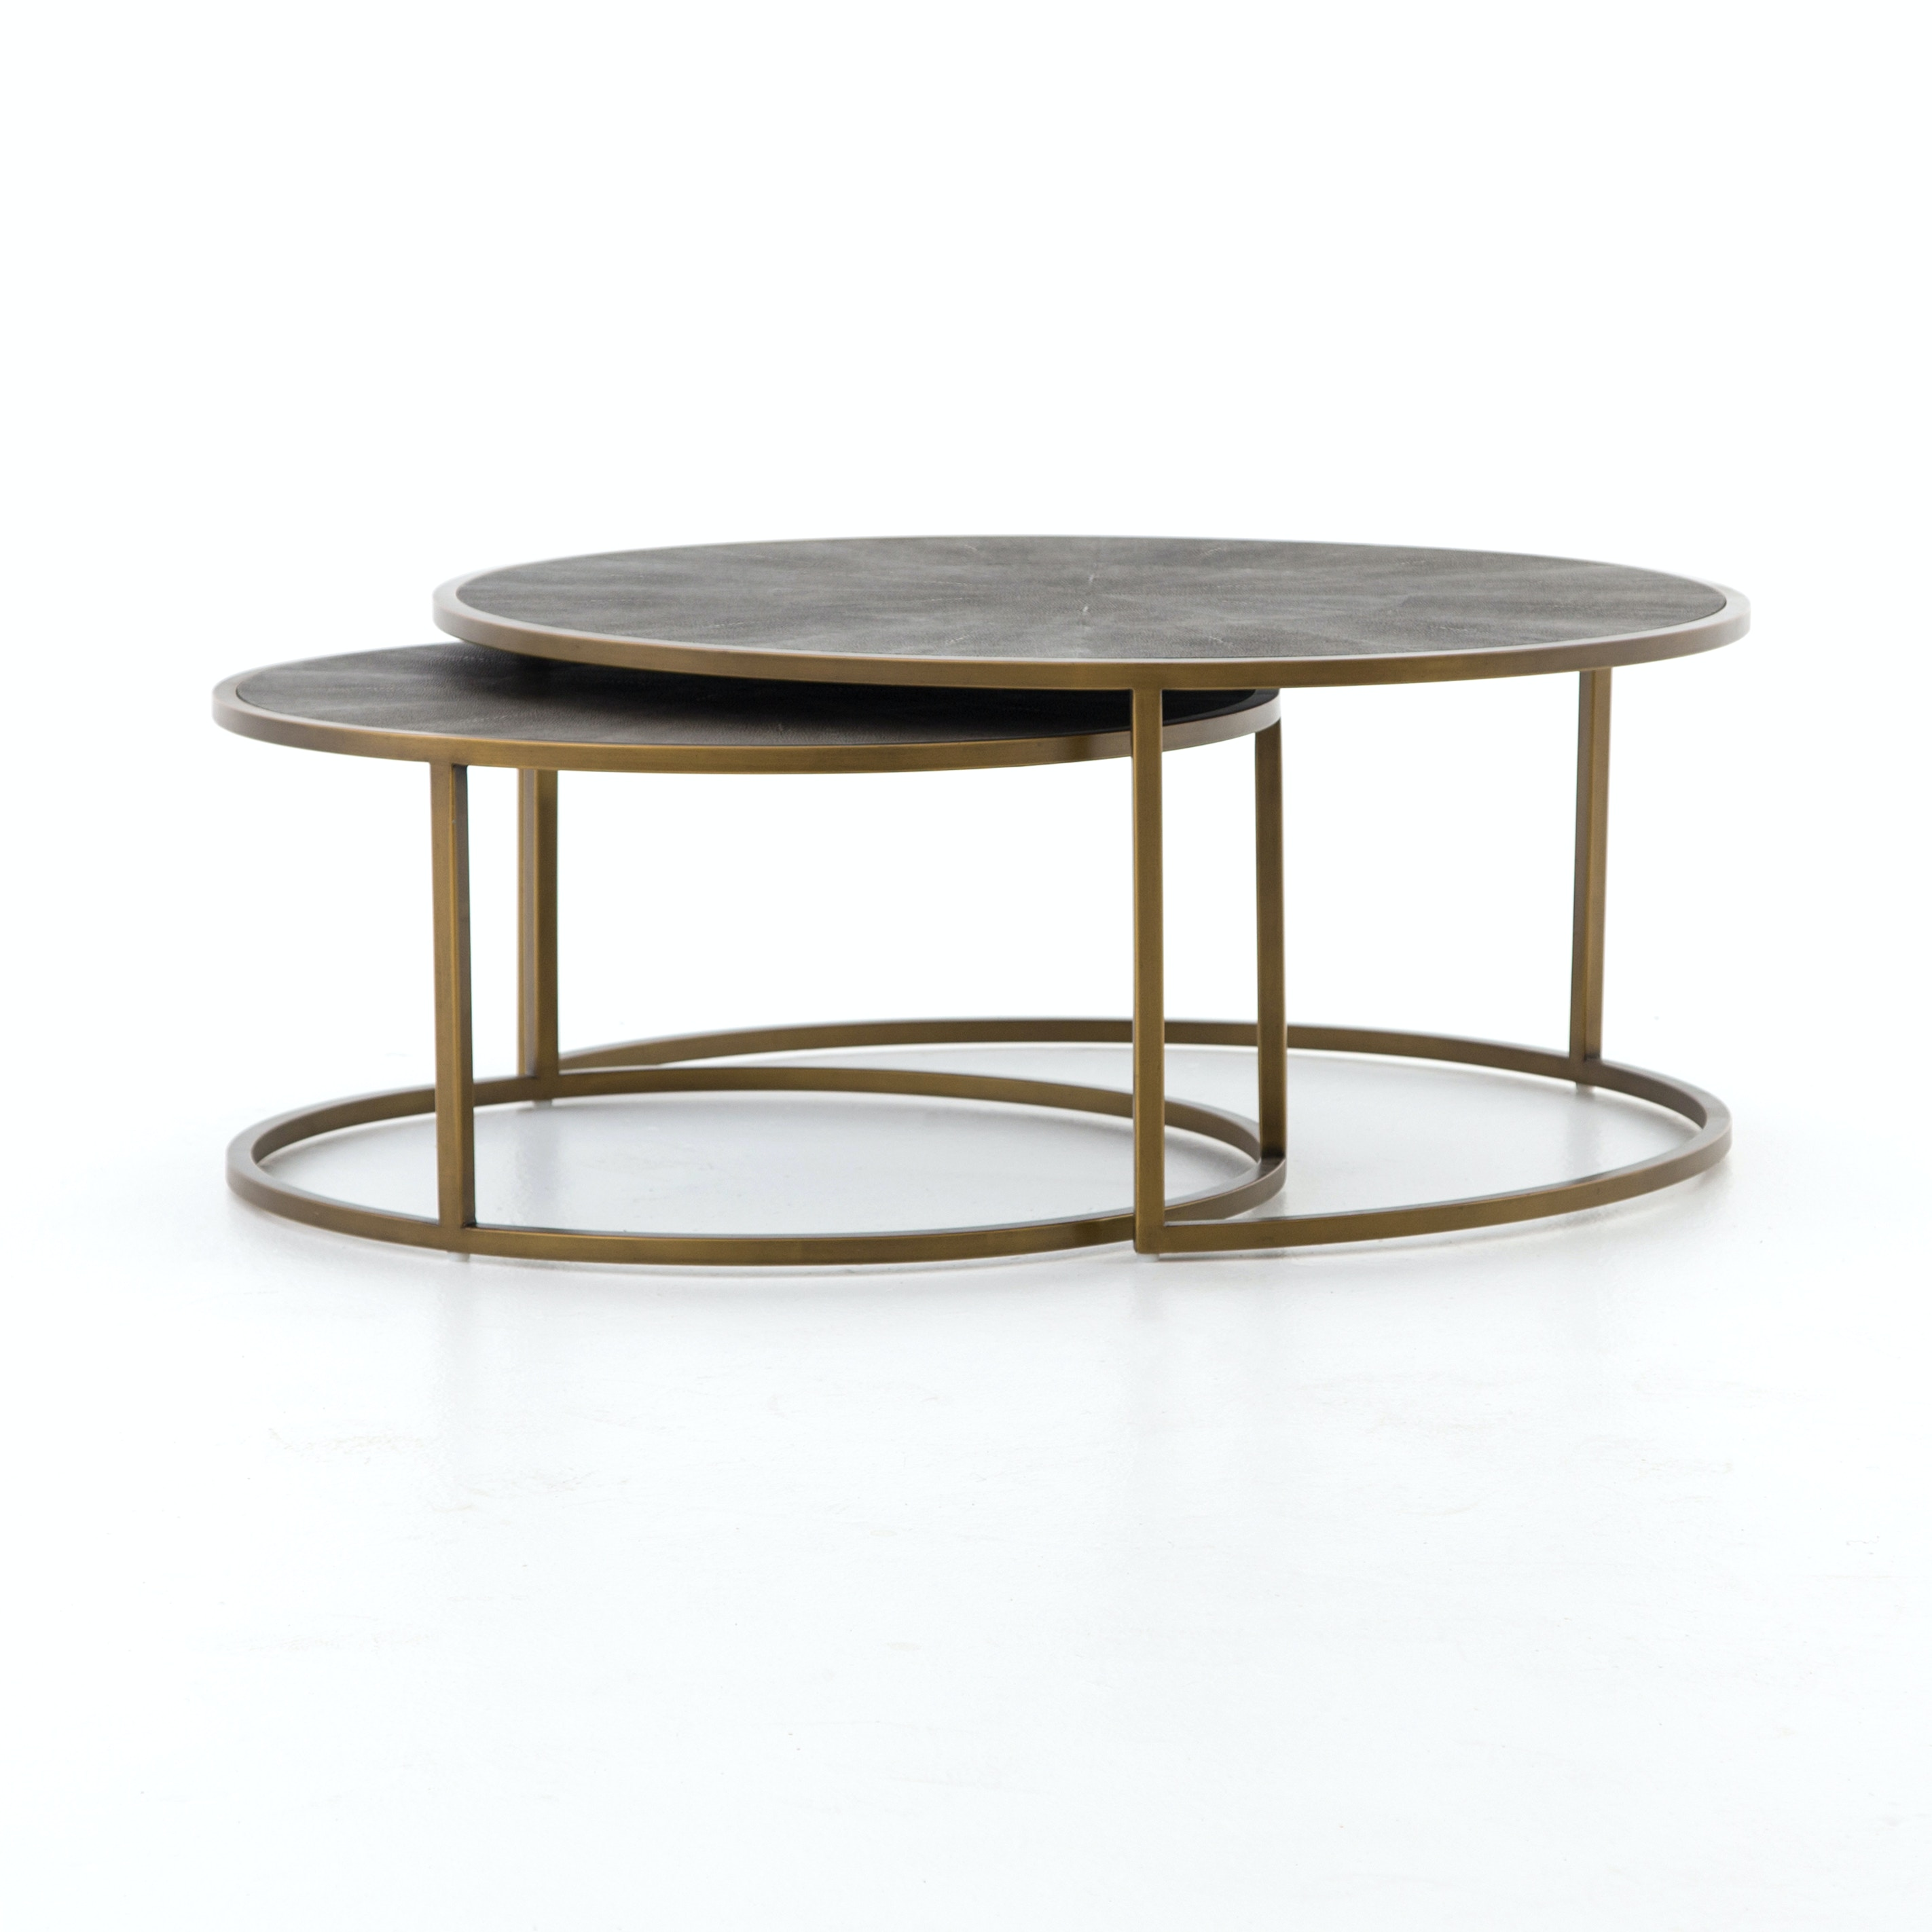 nesting furniture. Four Hands Furniture Bentley Shagreen Nesting Coffee Table VBEN-018